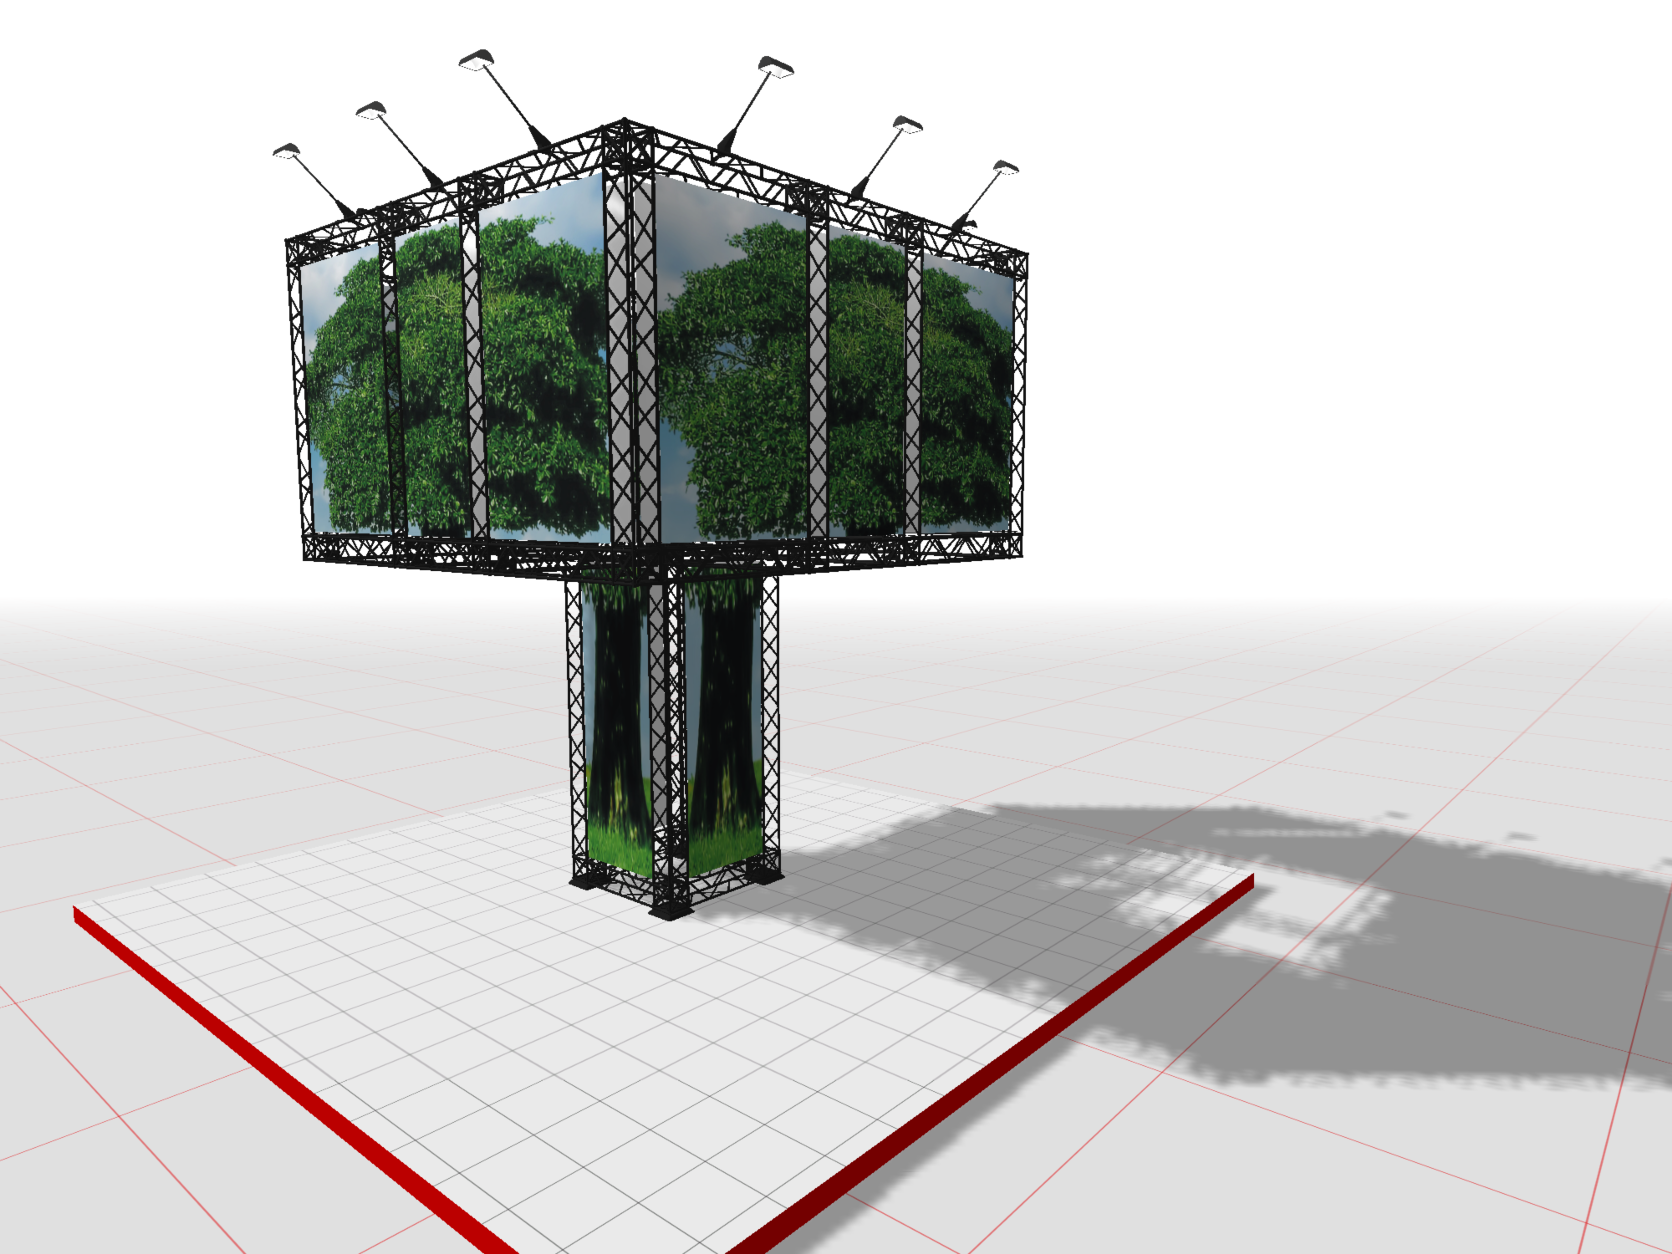 A treetop booth with spotlights